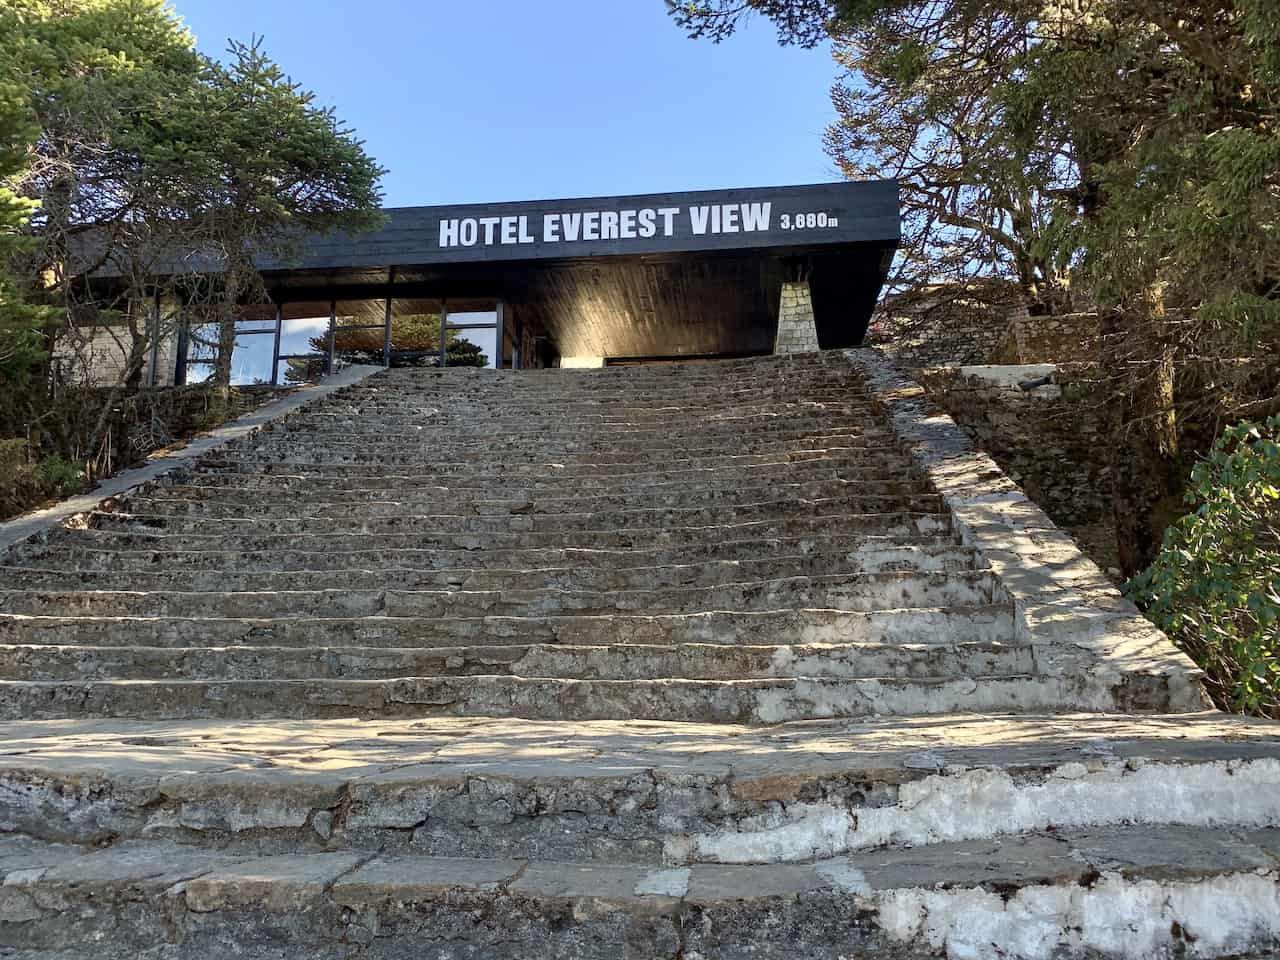 Hotel Everest View Entrance